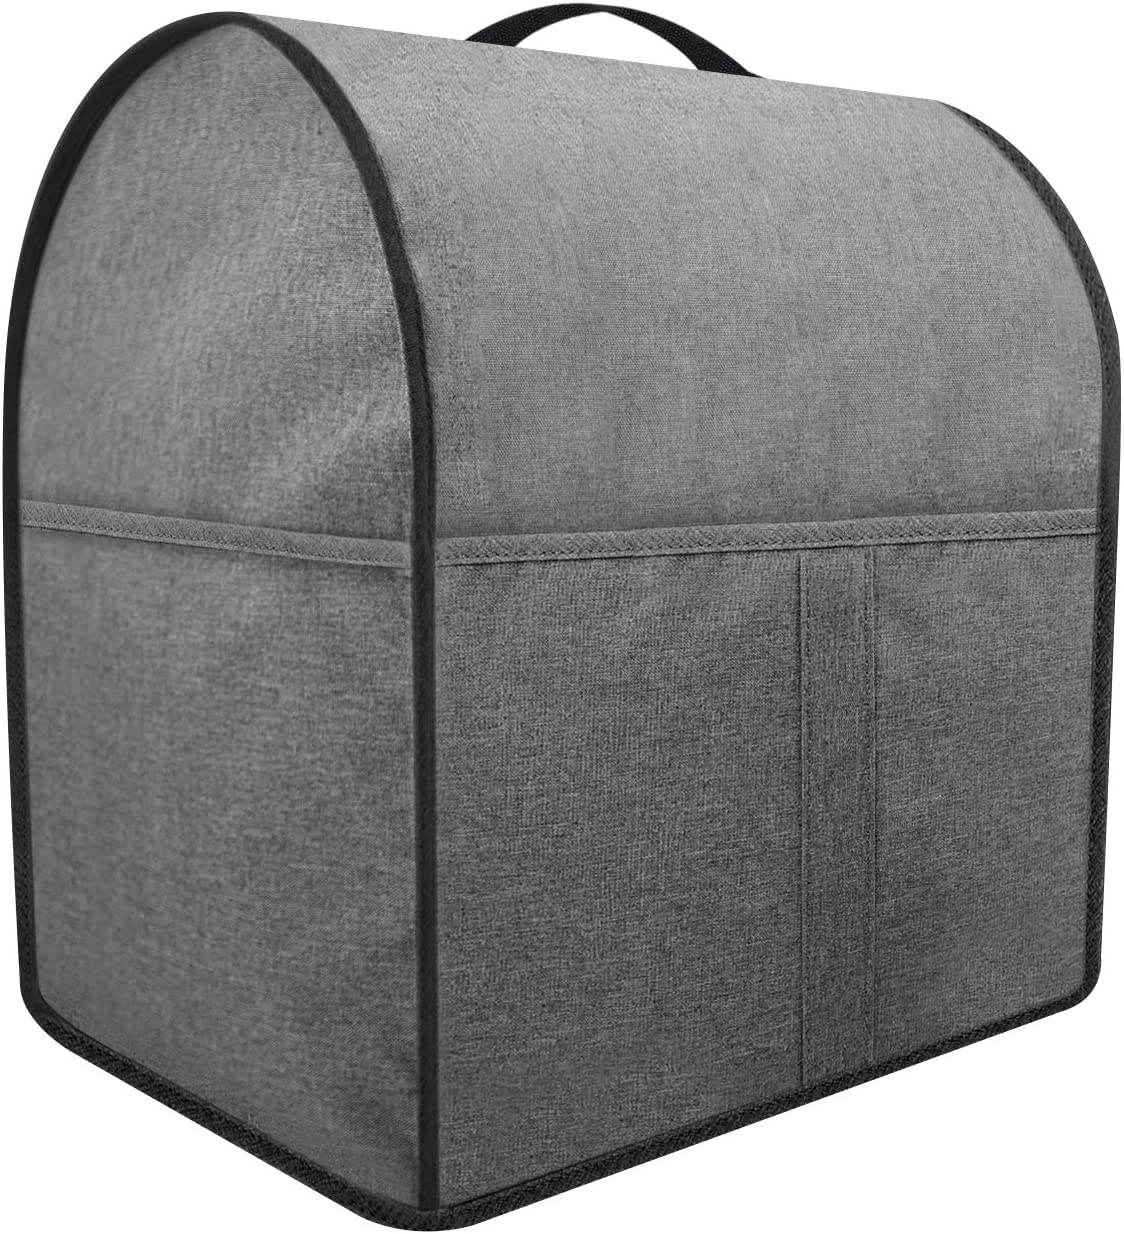 Dust Cover For Mixer, Cloth Cover with 3 Pockets for Extra Attachments ,Easy Cleaning (Grey, Fits for All 4.5-5 Quart)